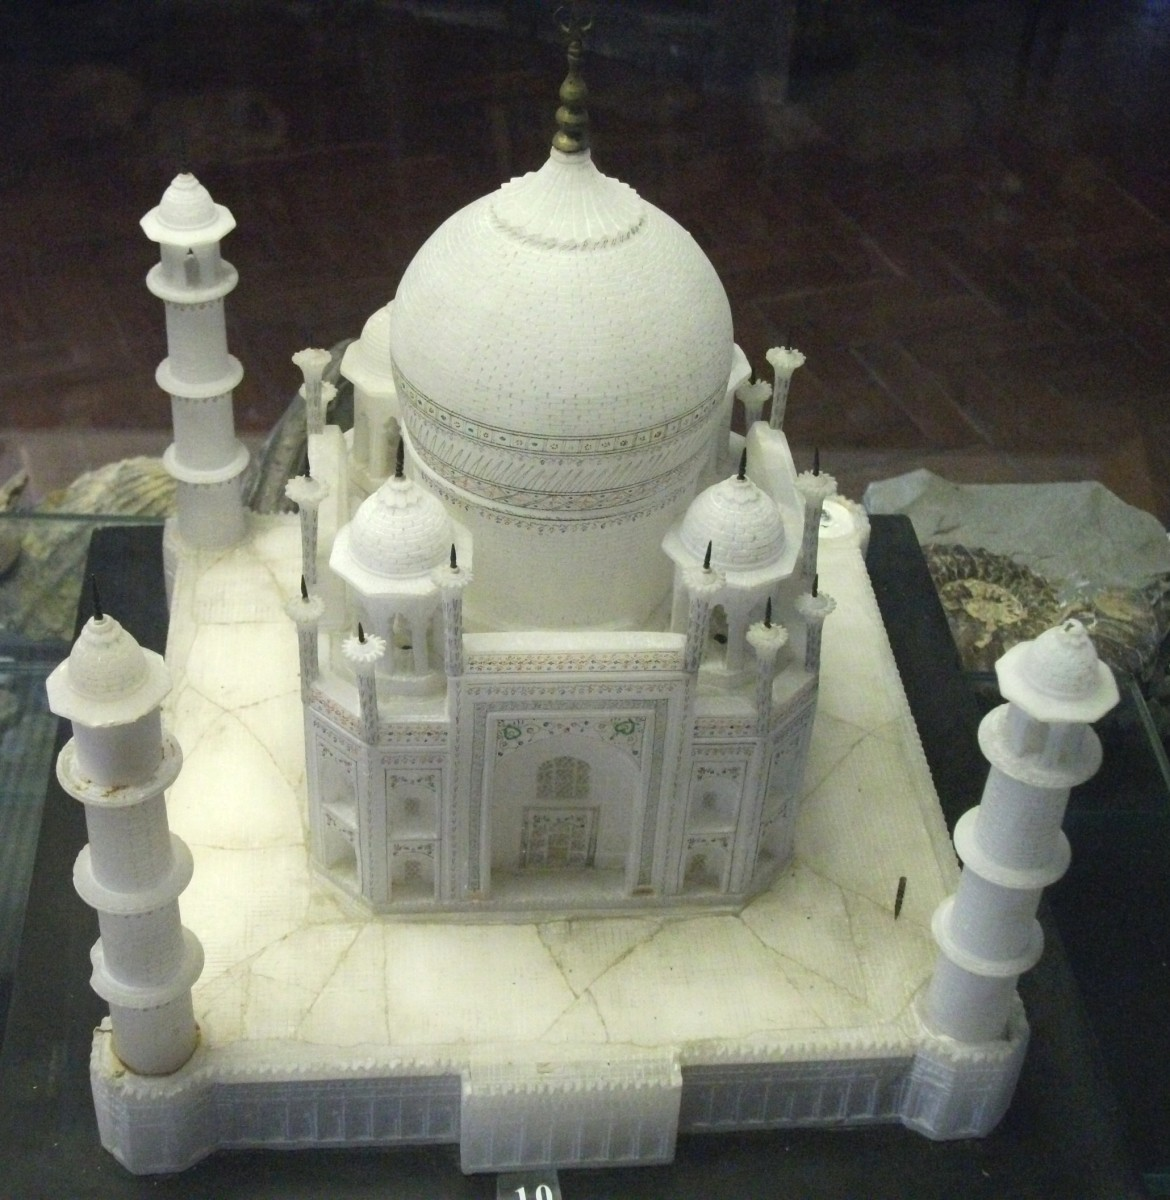 Soapstone model of the Taj Mahal